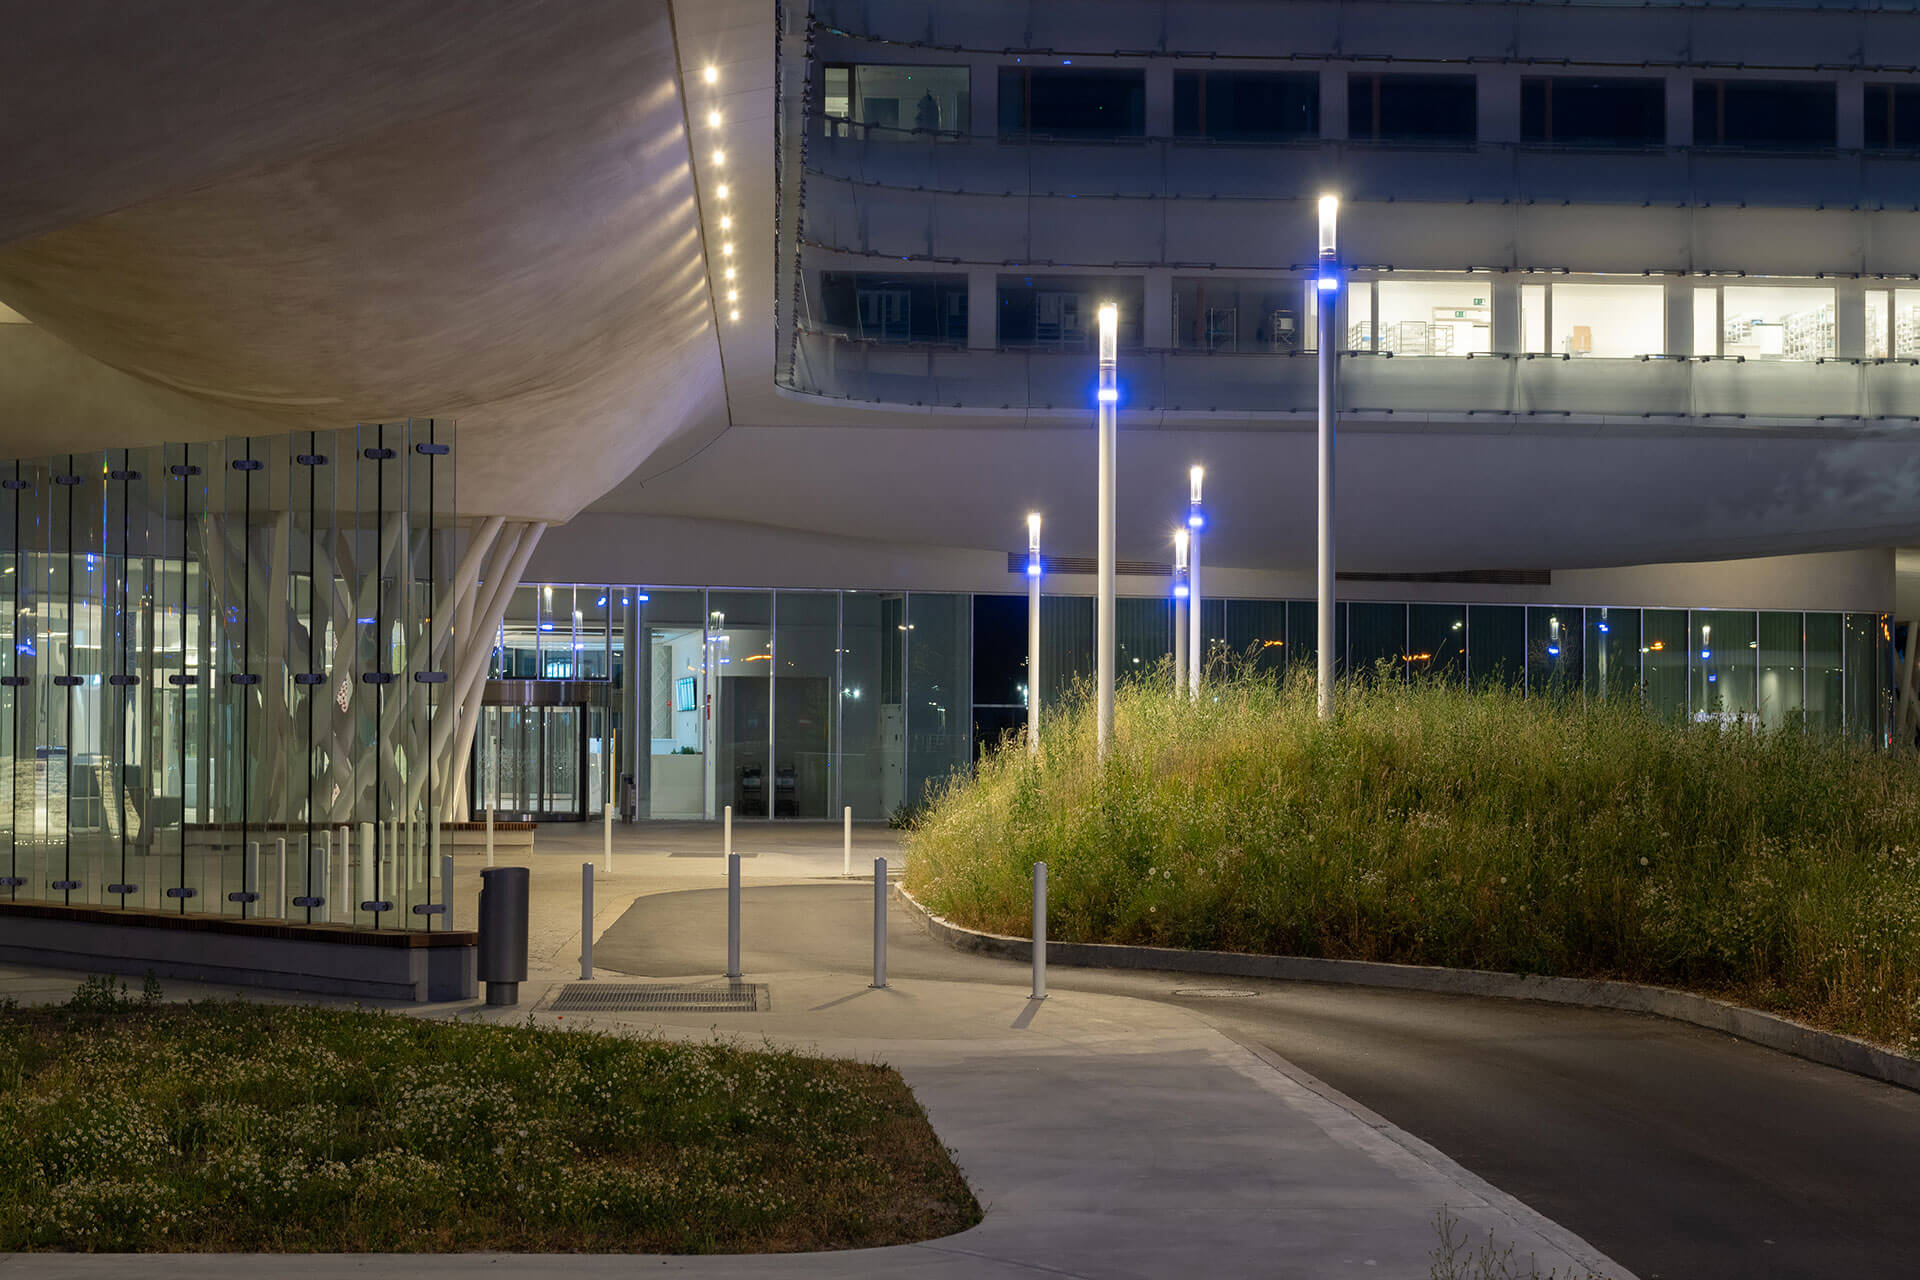 Shuffle smart columns highlight the entrance of AZ Zeno hospital, facilitating access for patients and visitors